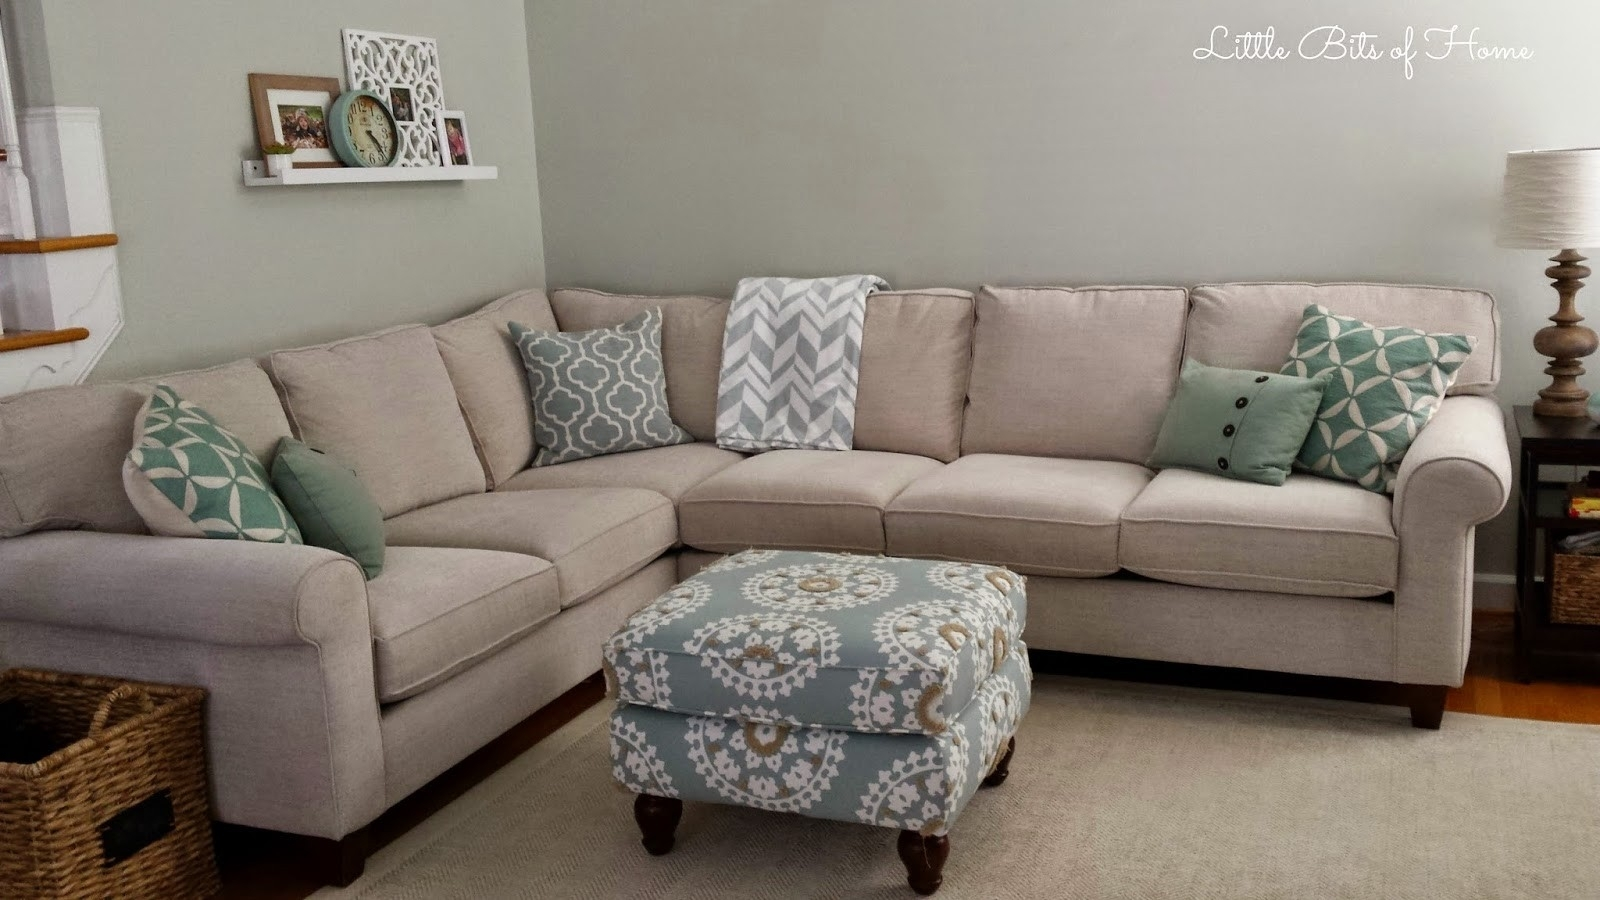 Lovely Haverty Sectional Sofa – Buildsimplehome Within Sectional Sofas At Havertys (Image 8 of 10)